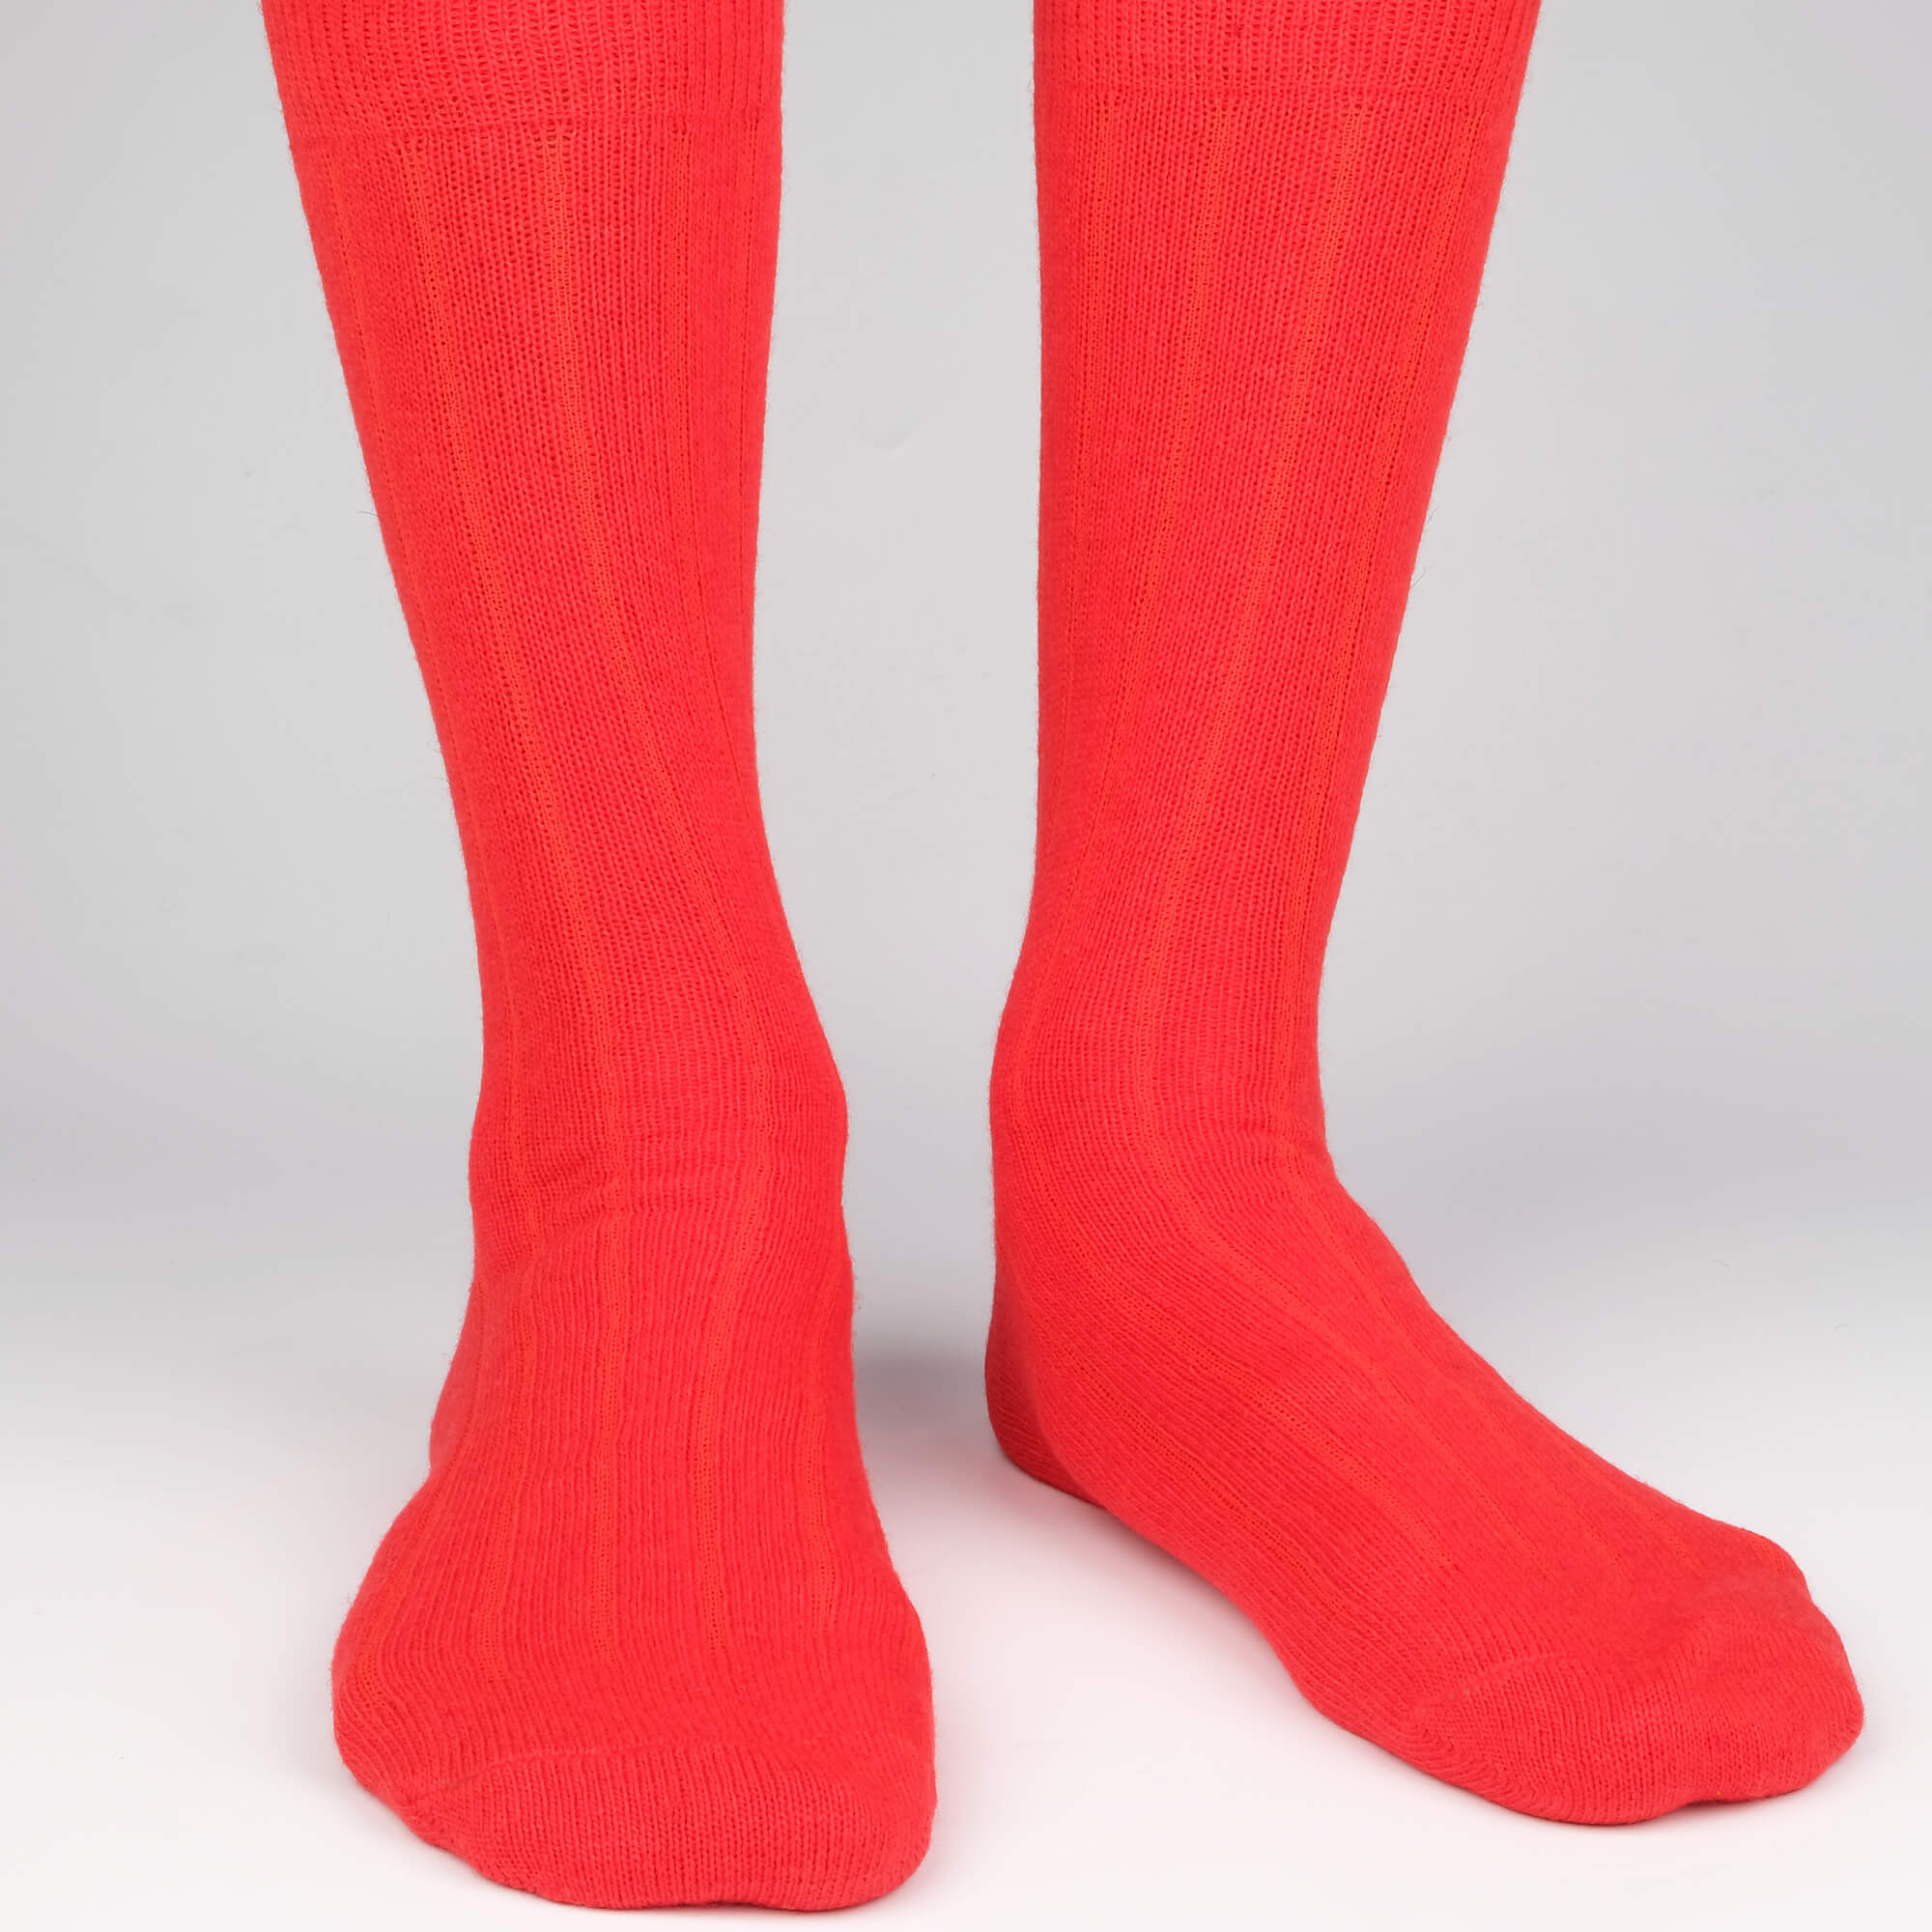 Cashmere Ribbed - Red - Mens Socks | Etiquette Clothiers Global Official